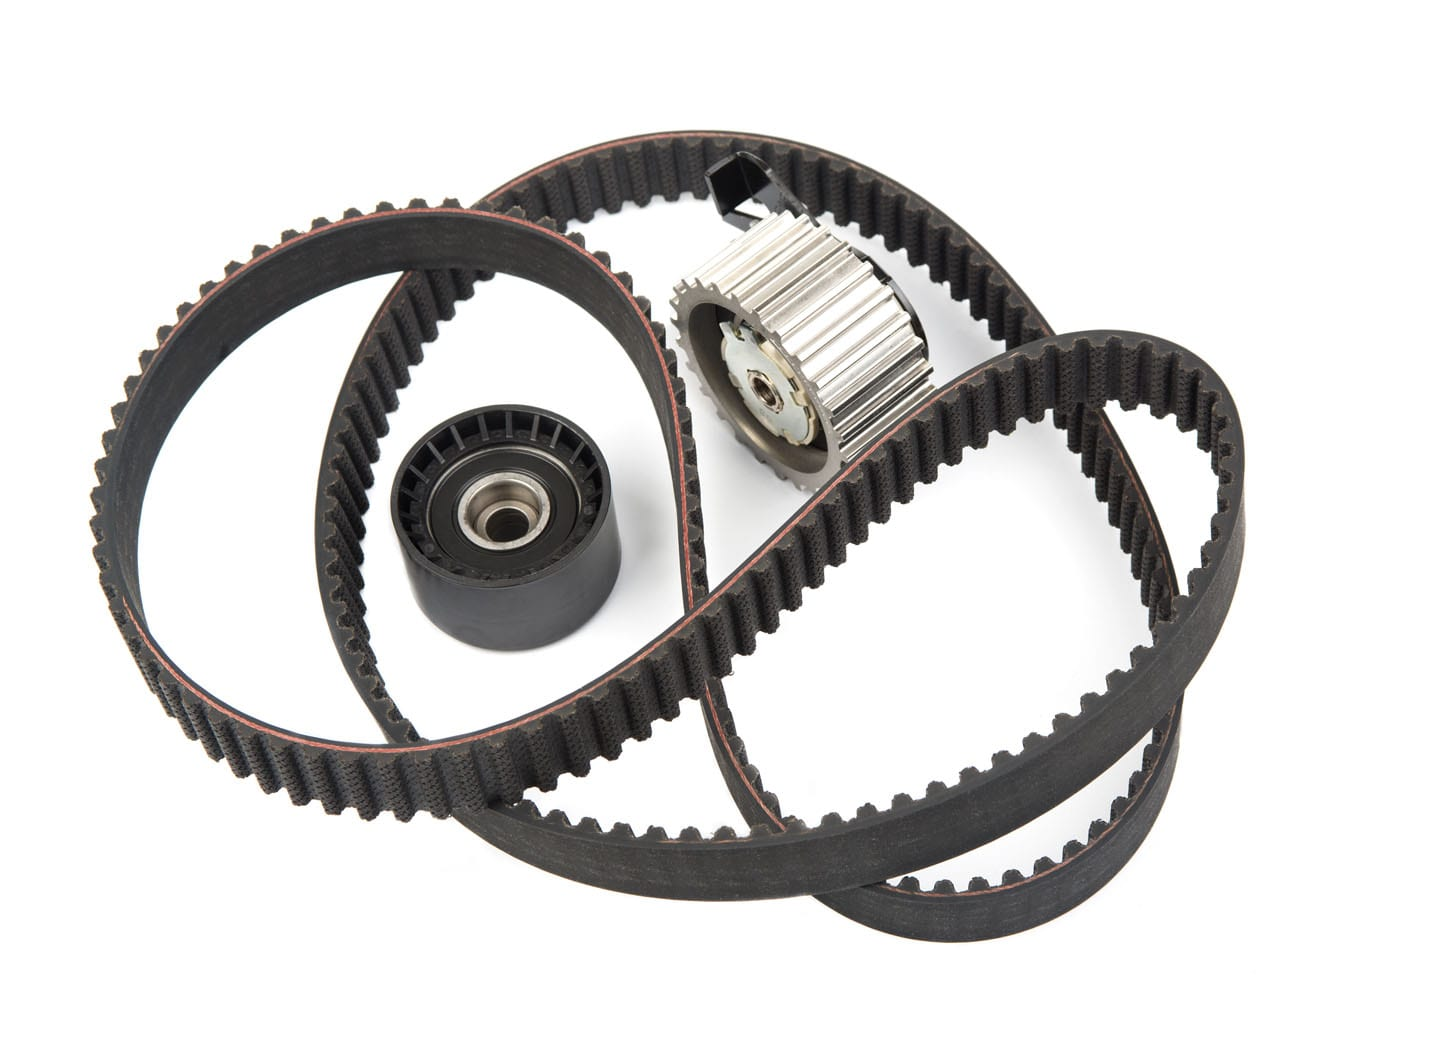 serpentine belt with gears